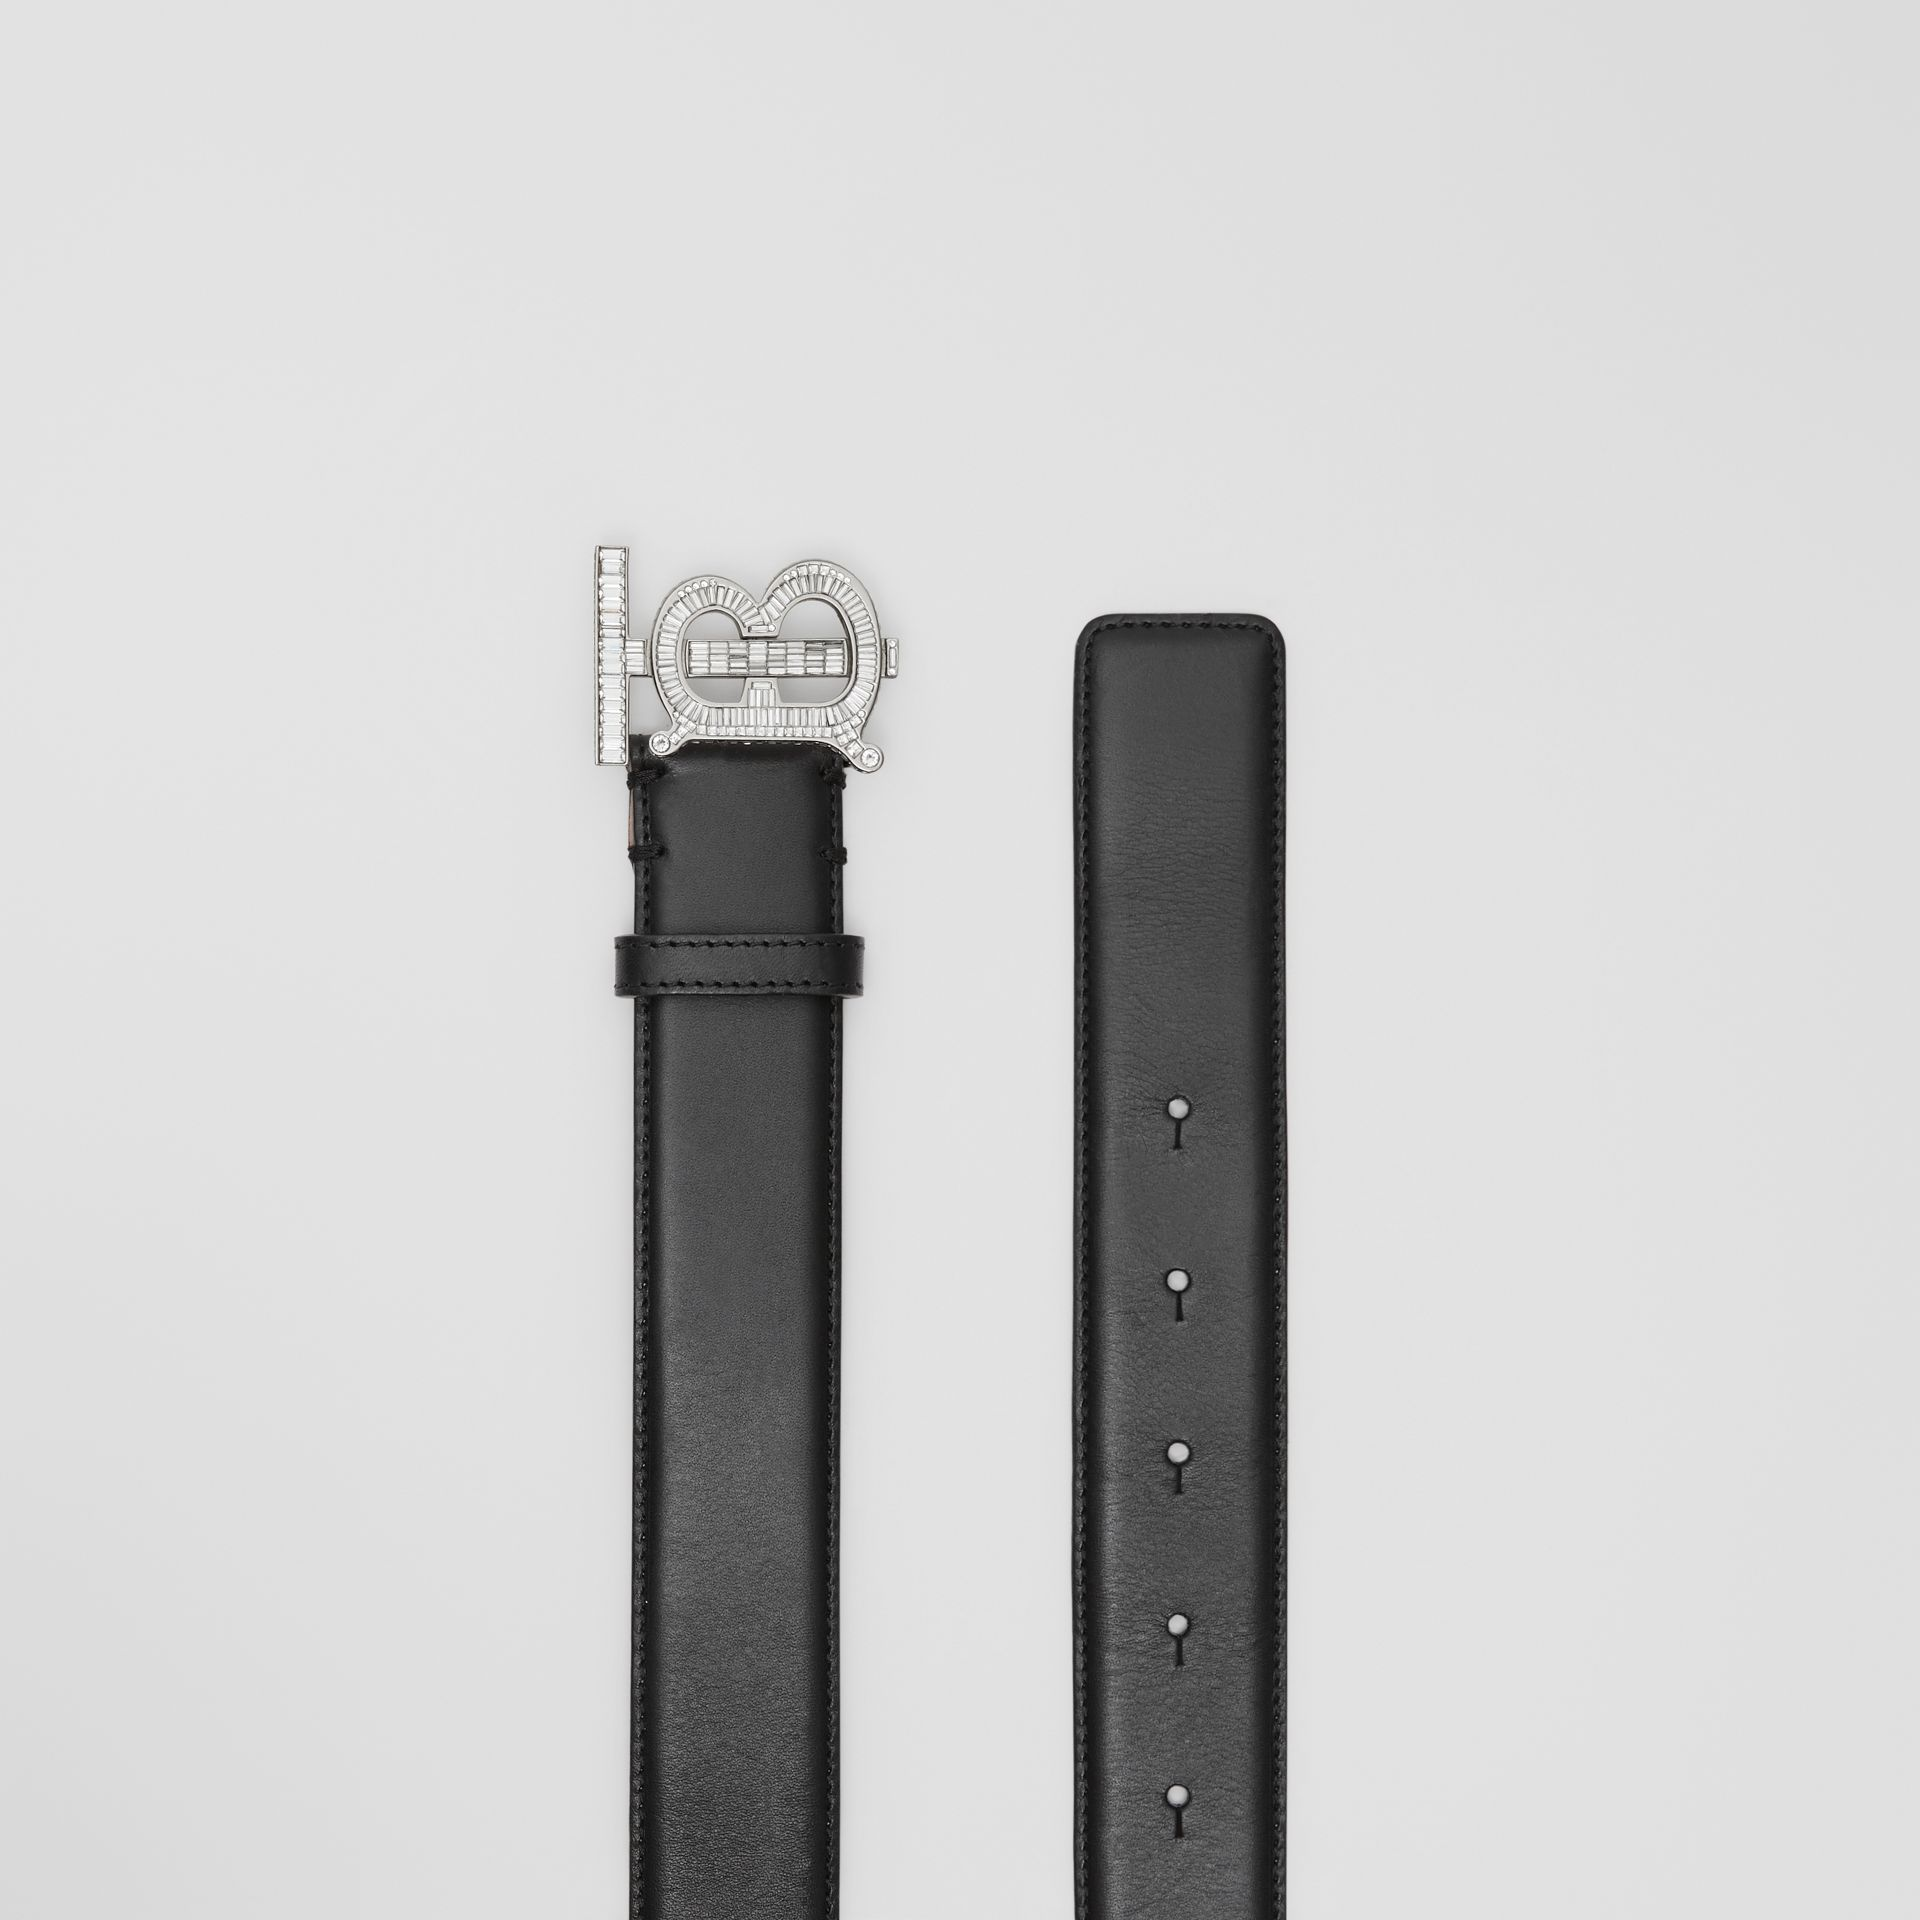 Crystal Monogram Motif Leather Belt in Black/palladium - Women | Burberry United States - gallery image 5